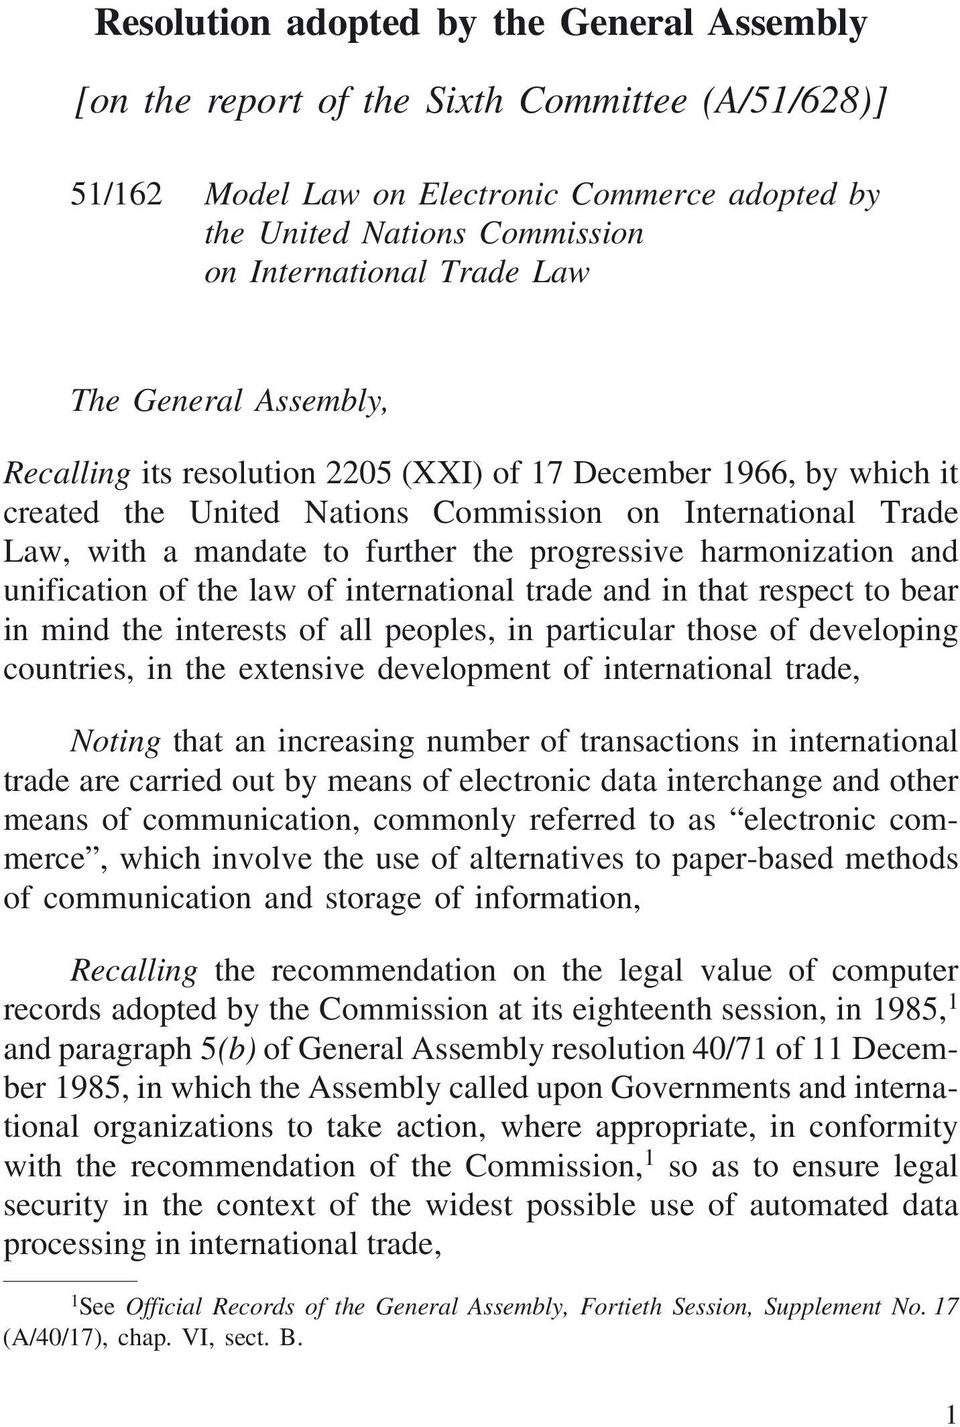 progressive harmonization and unification of the law of international trade and in that respect to bear in mind the interests of all peoples, in particular those of developing countries, in the